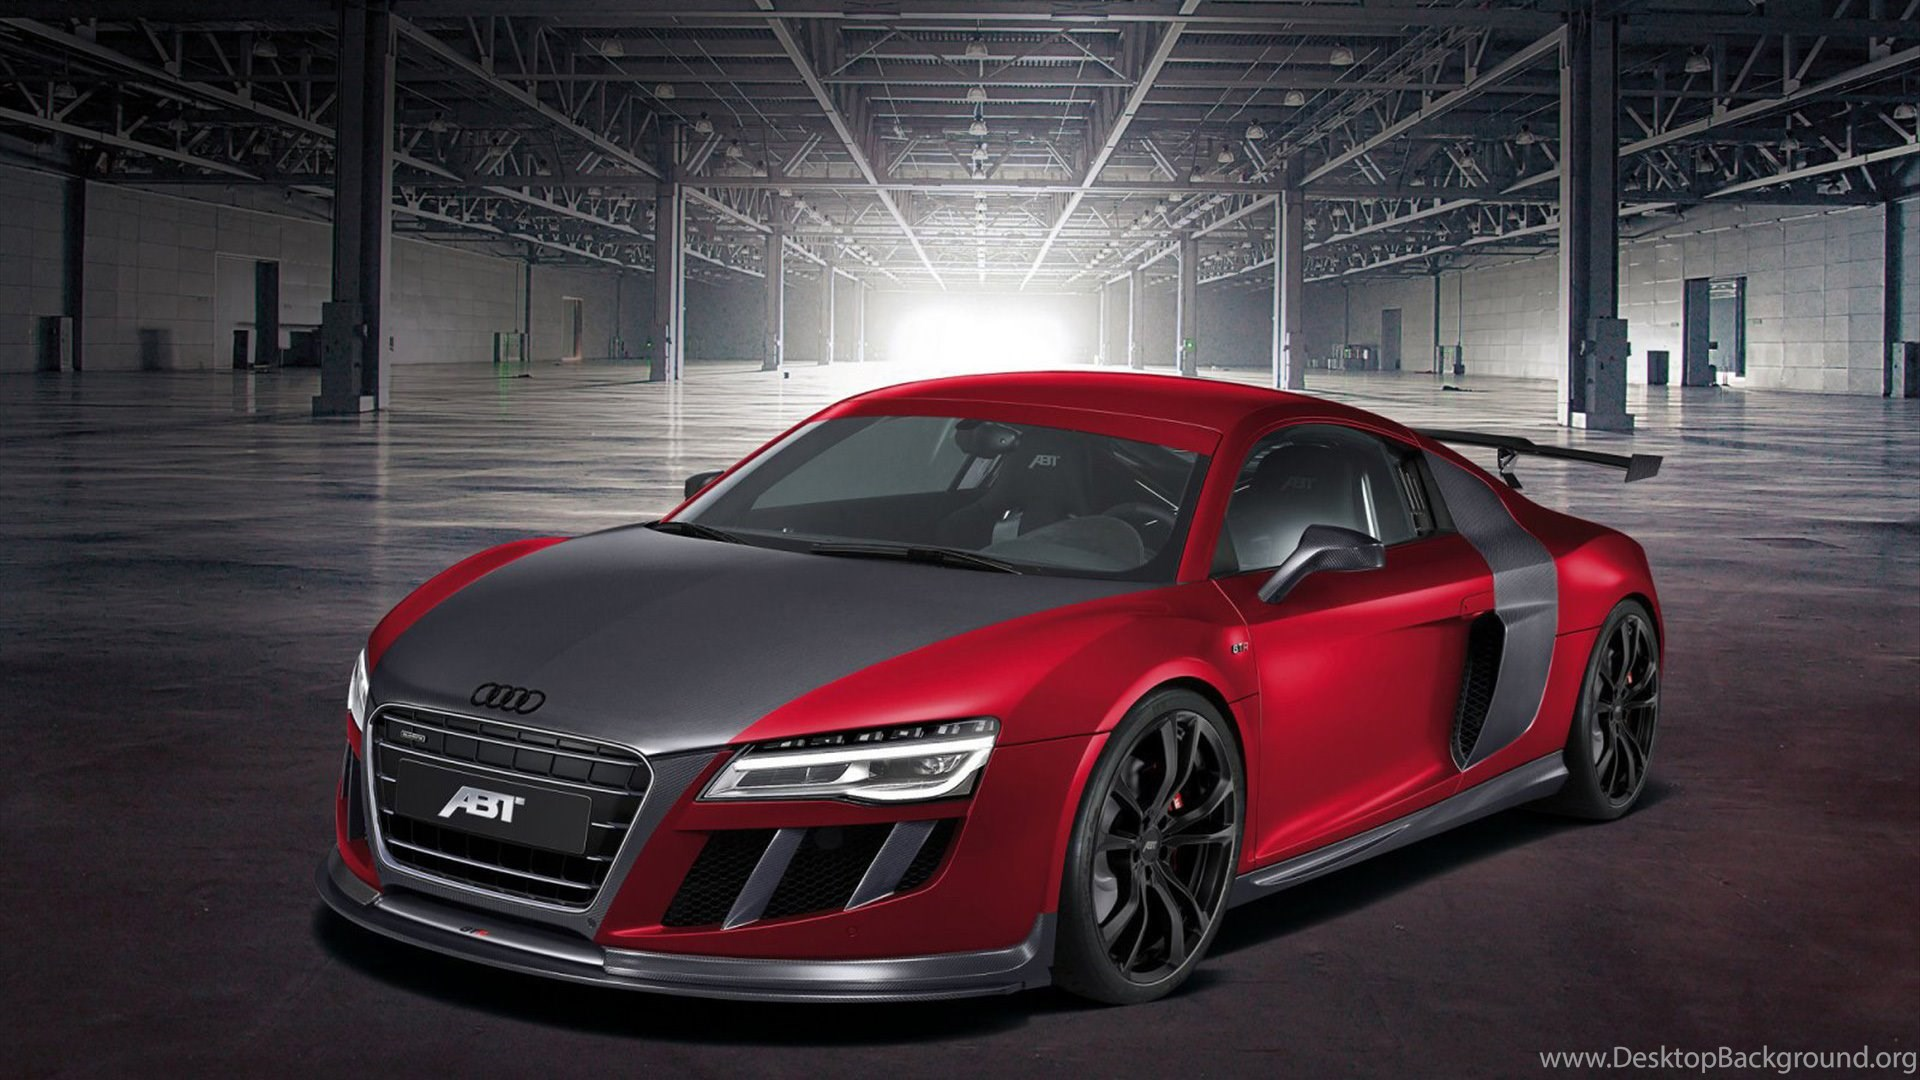 new audi wallpapers photo phone wallpapers desktop background